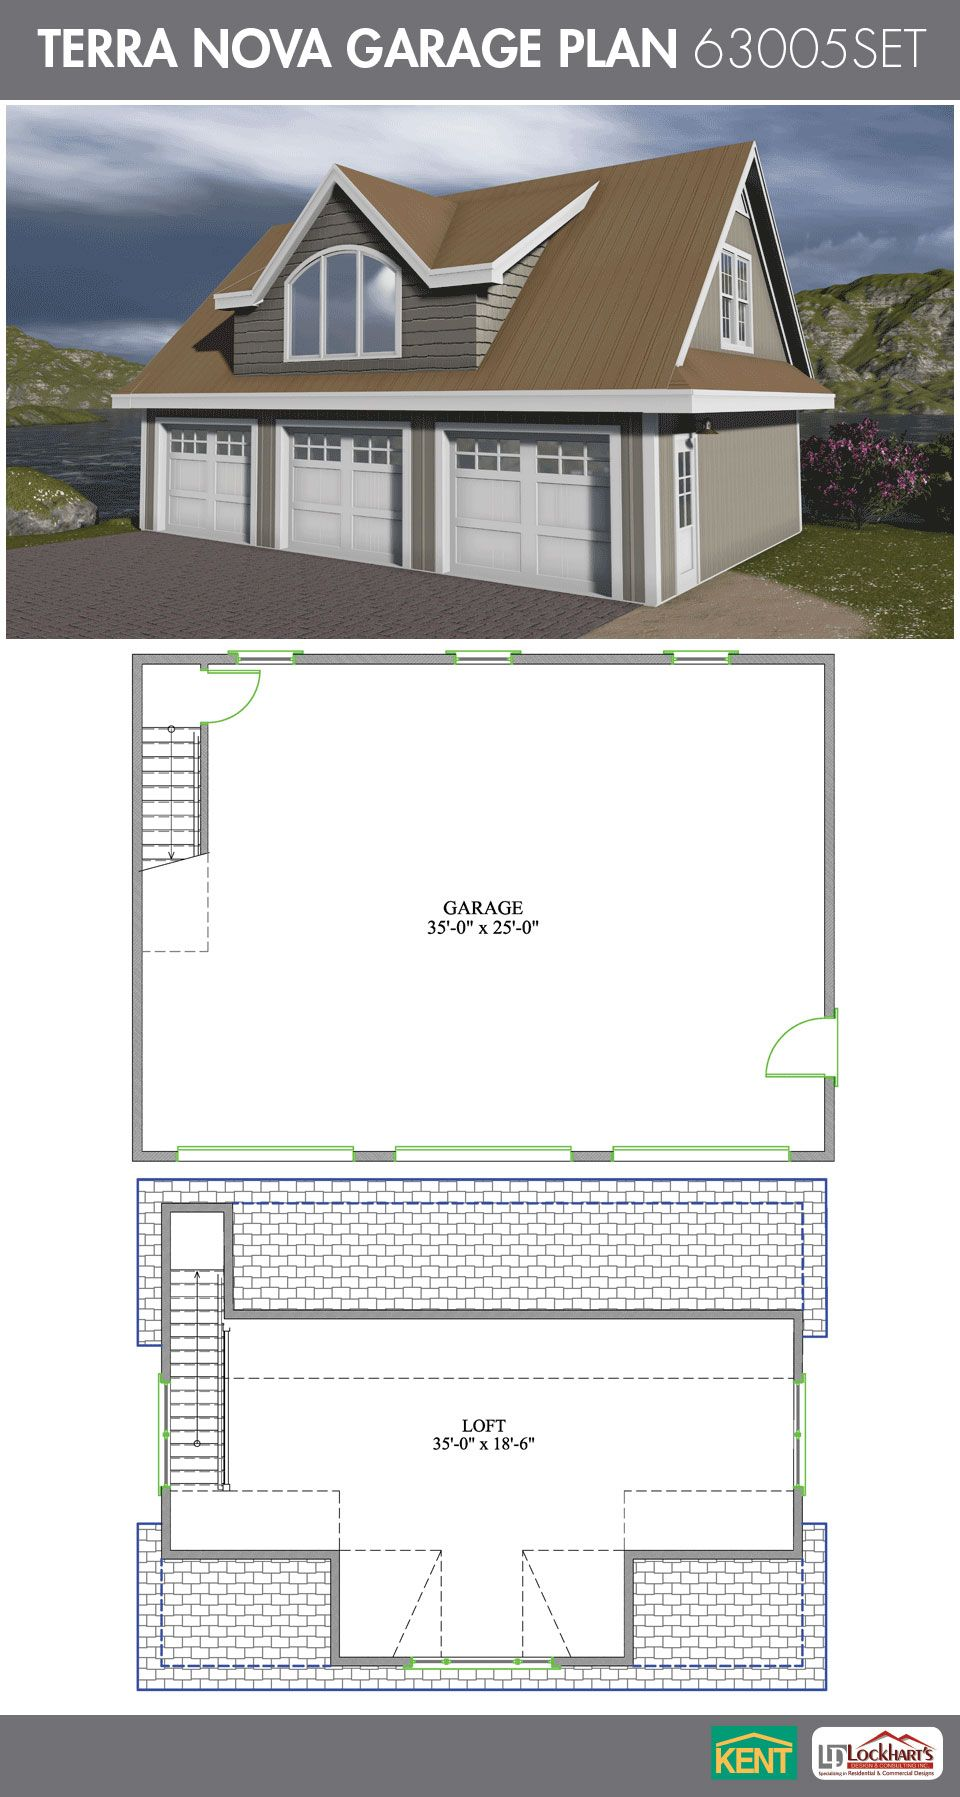 Terra Nova Garage Plan 36 x 26 3car garage 570 sq ft bonus – 3 Car Garage Plans With Bonus Room